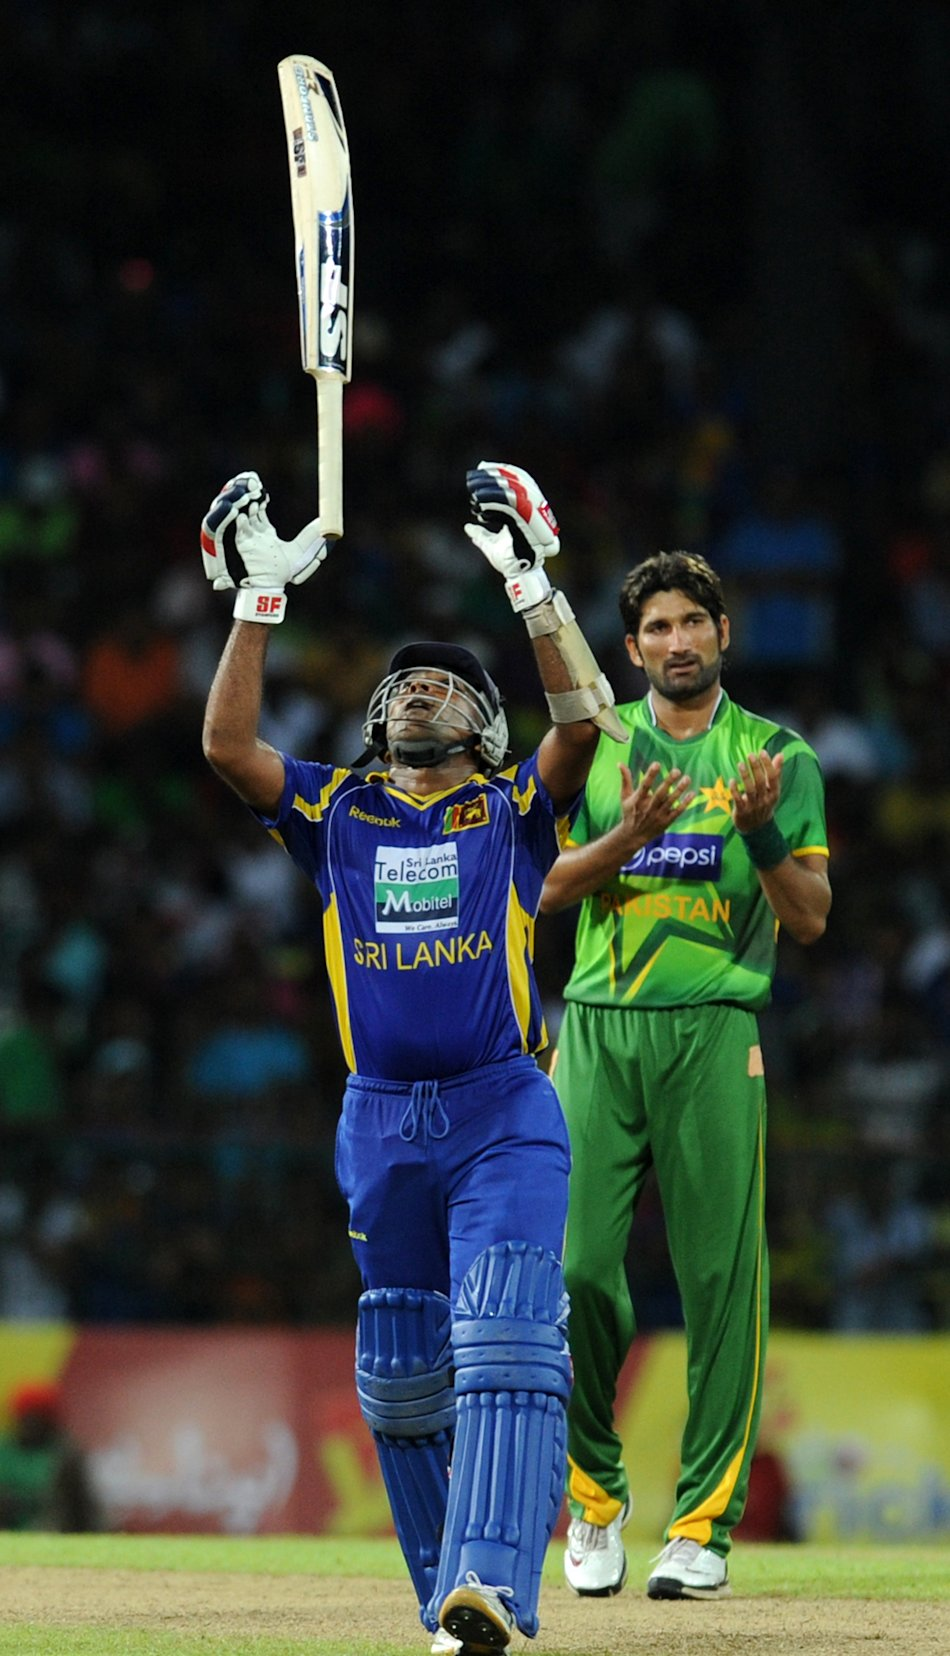 Sri Lankan captain Mahela Jayawardene th